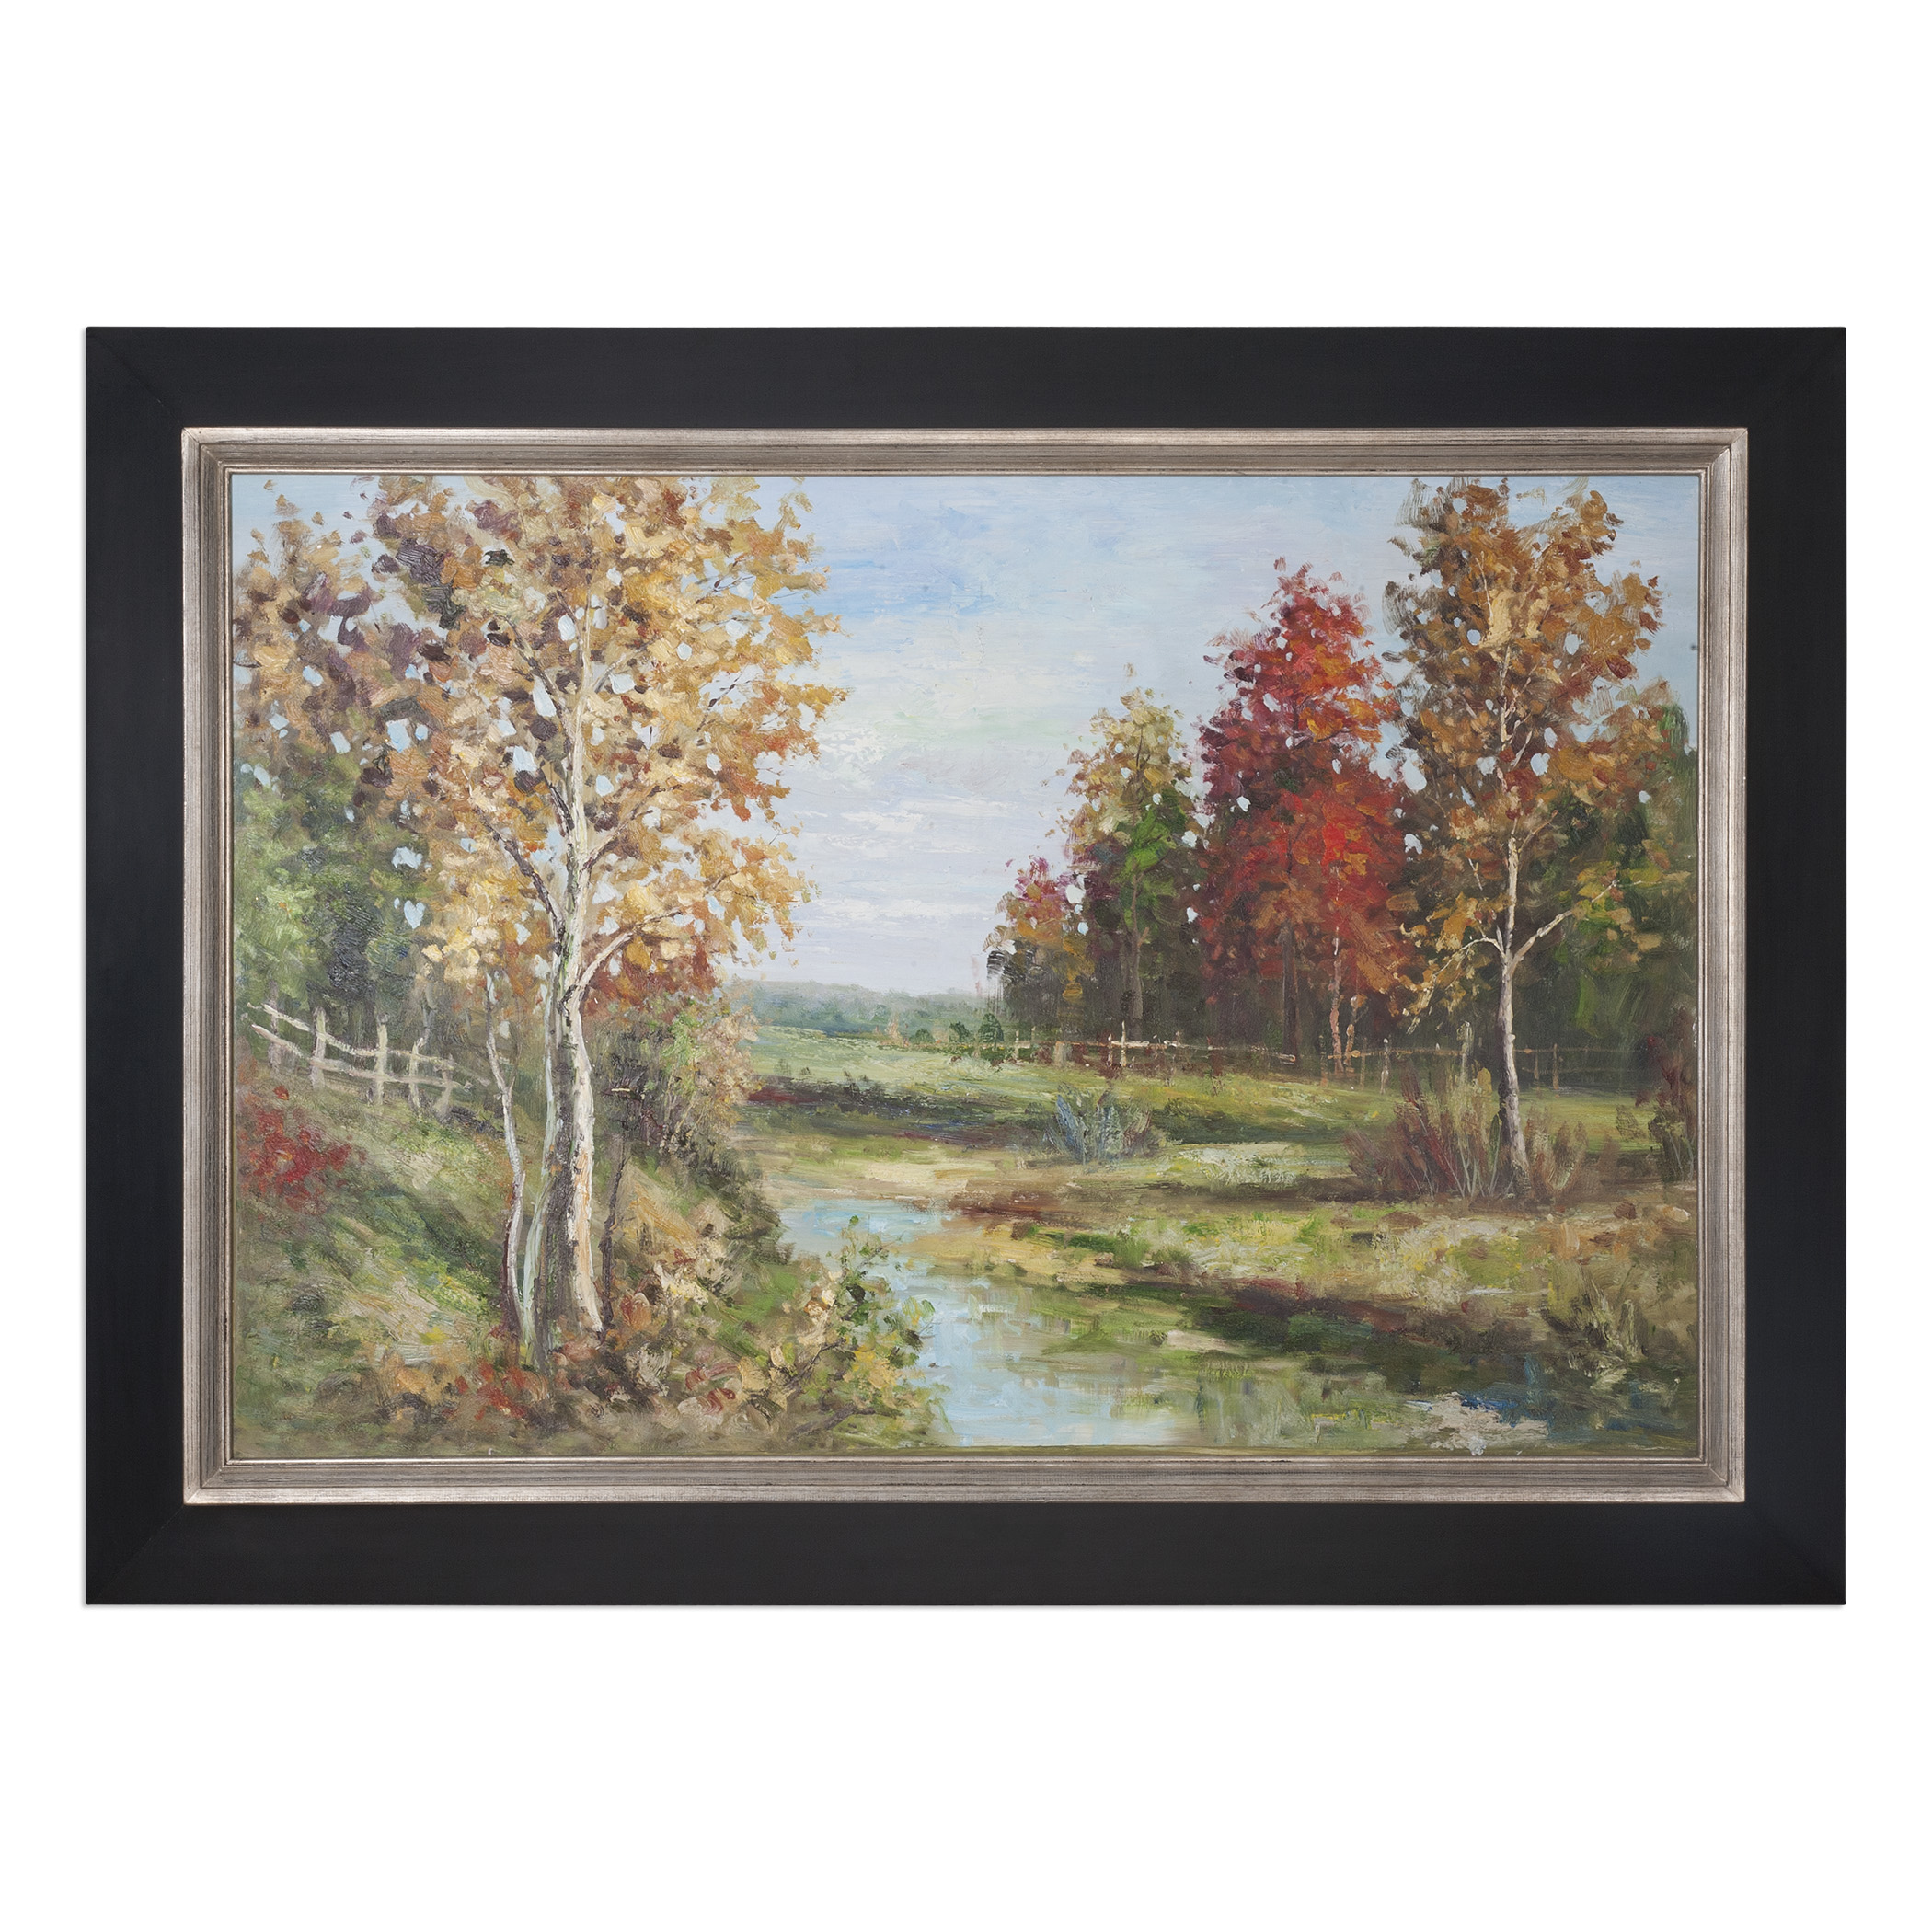 Uttermost Art Country Creek Landscape Art - Item Number: 33635